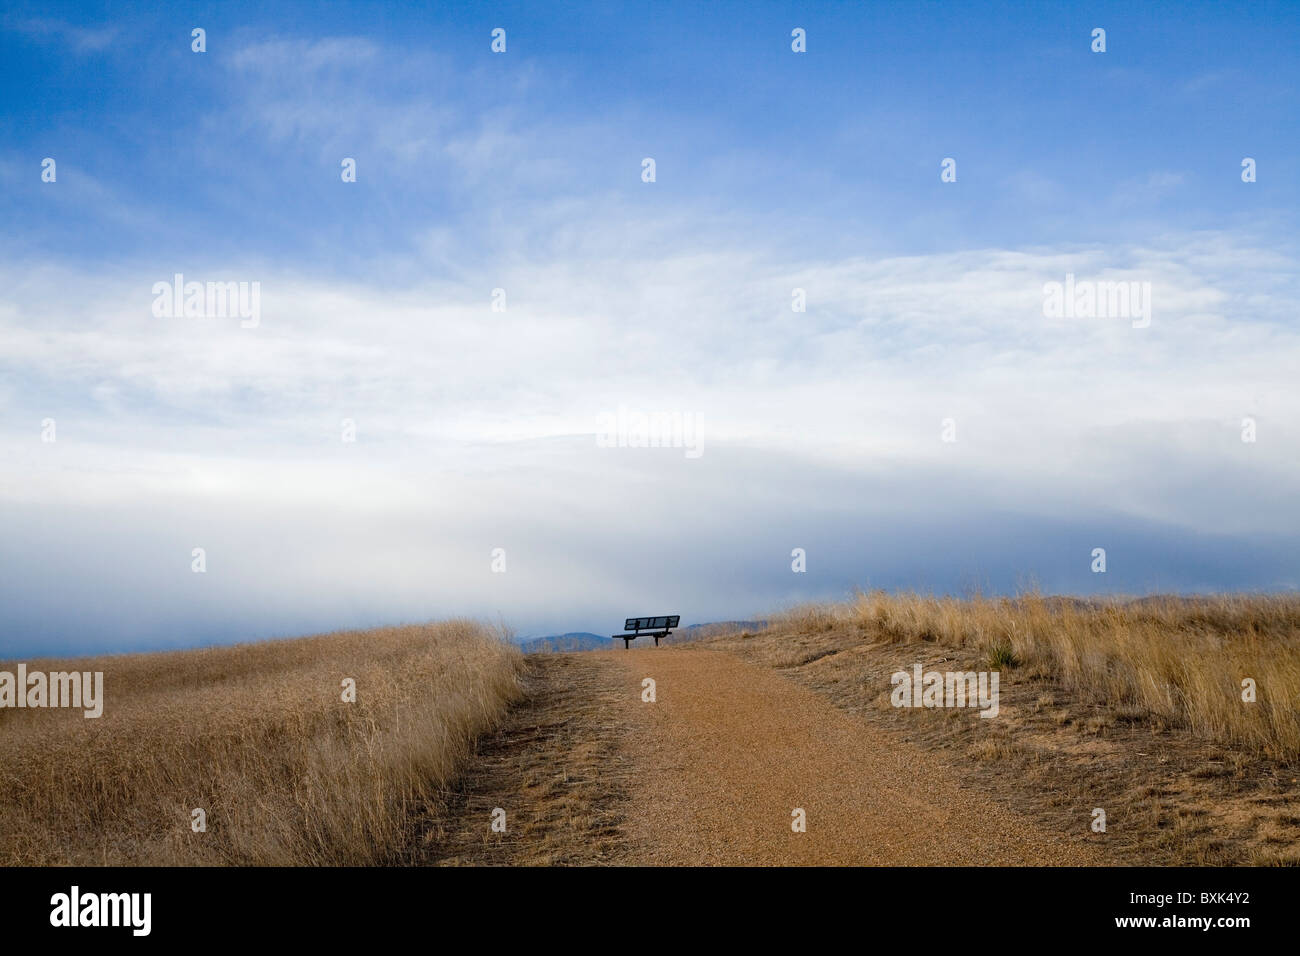 a bench sits at the top of the dirt trail, overlooking the Rocky Mountain foothills - Stock Image